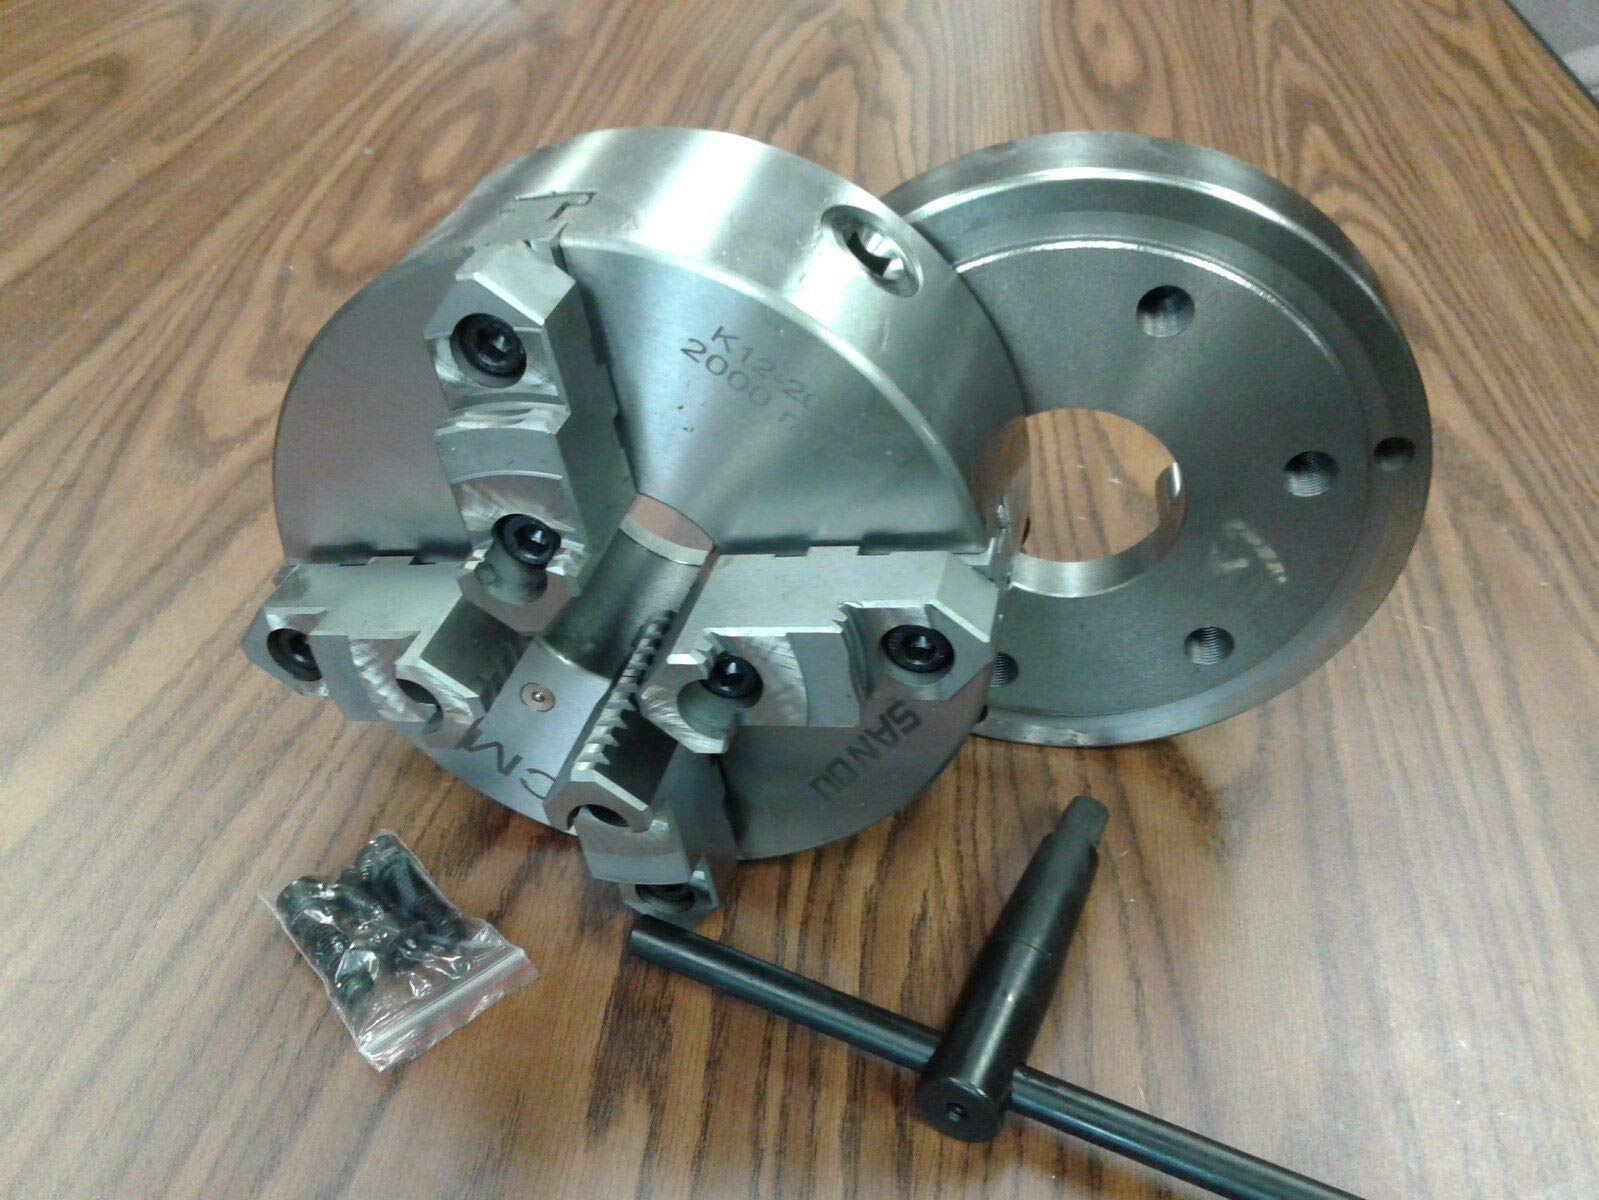 8'' 4-Jaw Self-Centering Lathe Chuck top&Bottom Jaws w. D1-6 Adapter Plate-New by CME (Image #1)